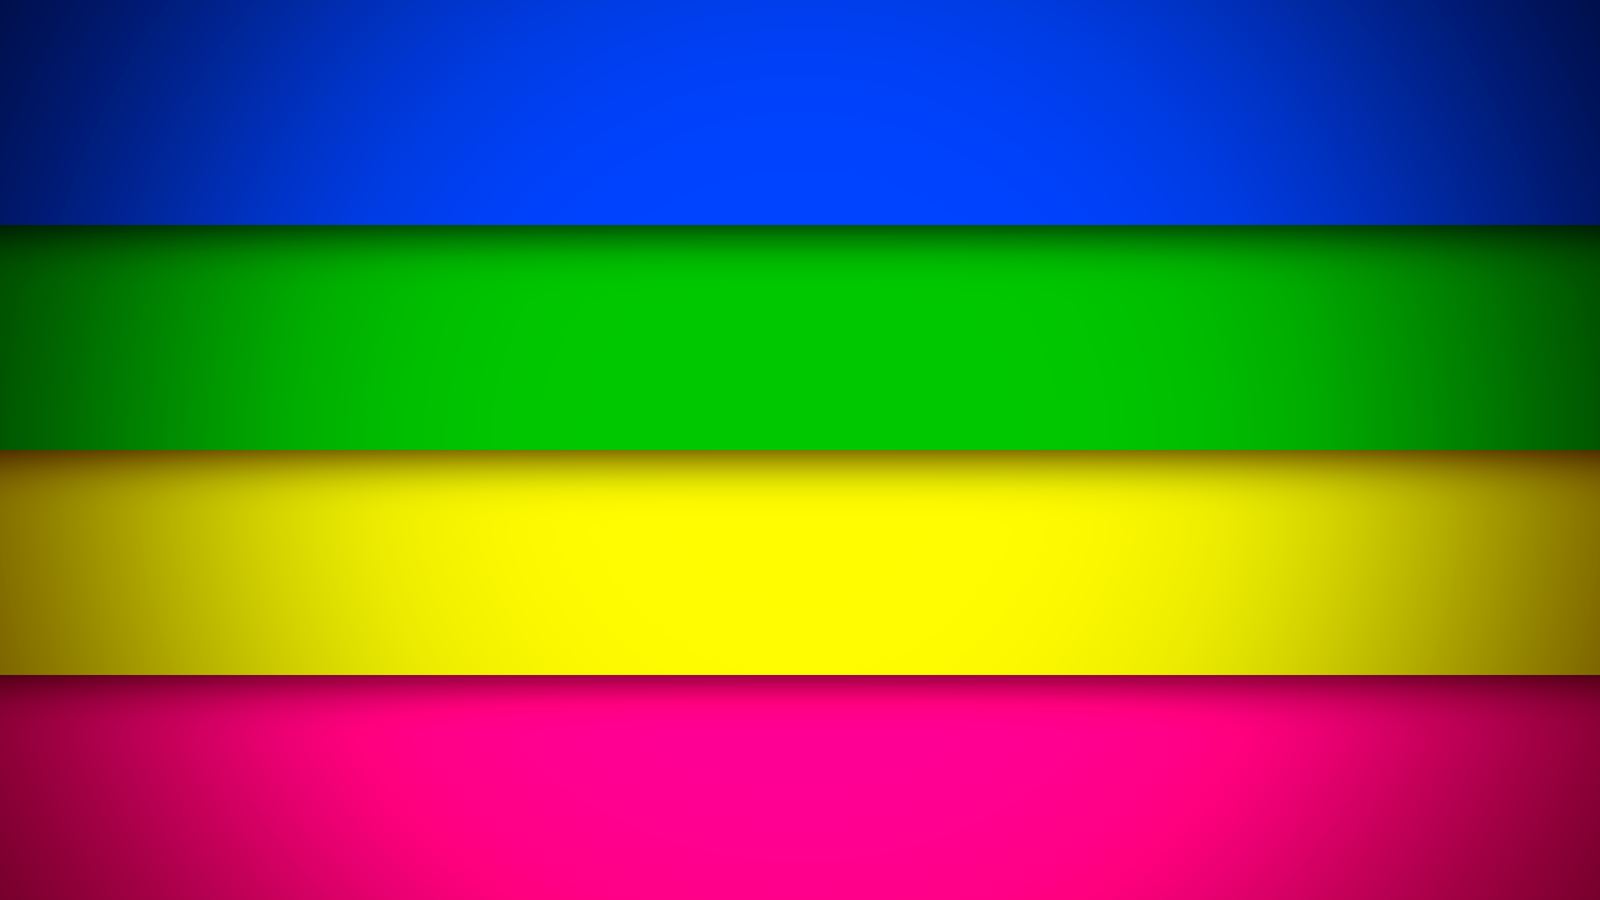 five wall color wallpapers - DriverLayer Search Engine